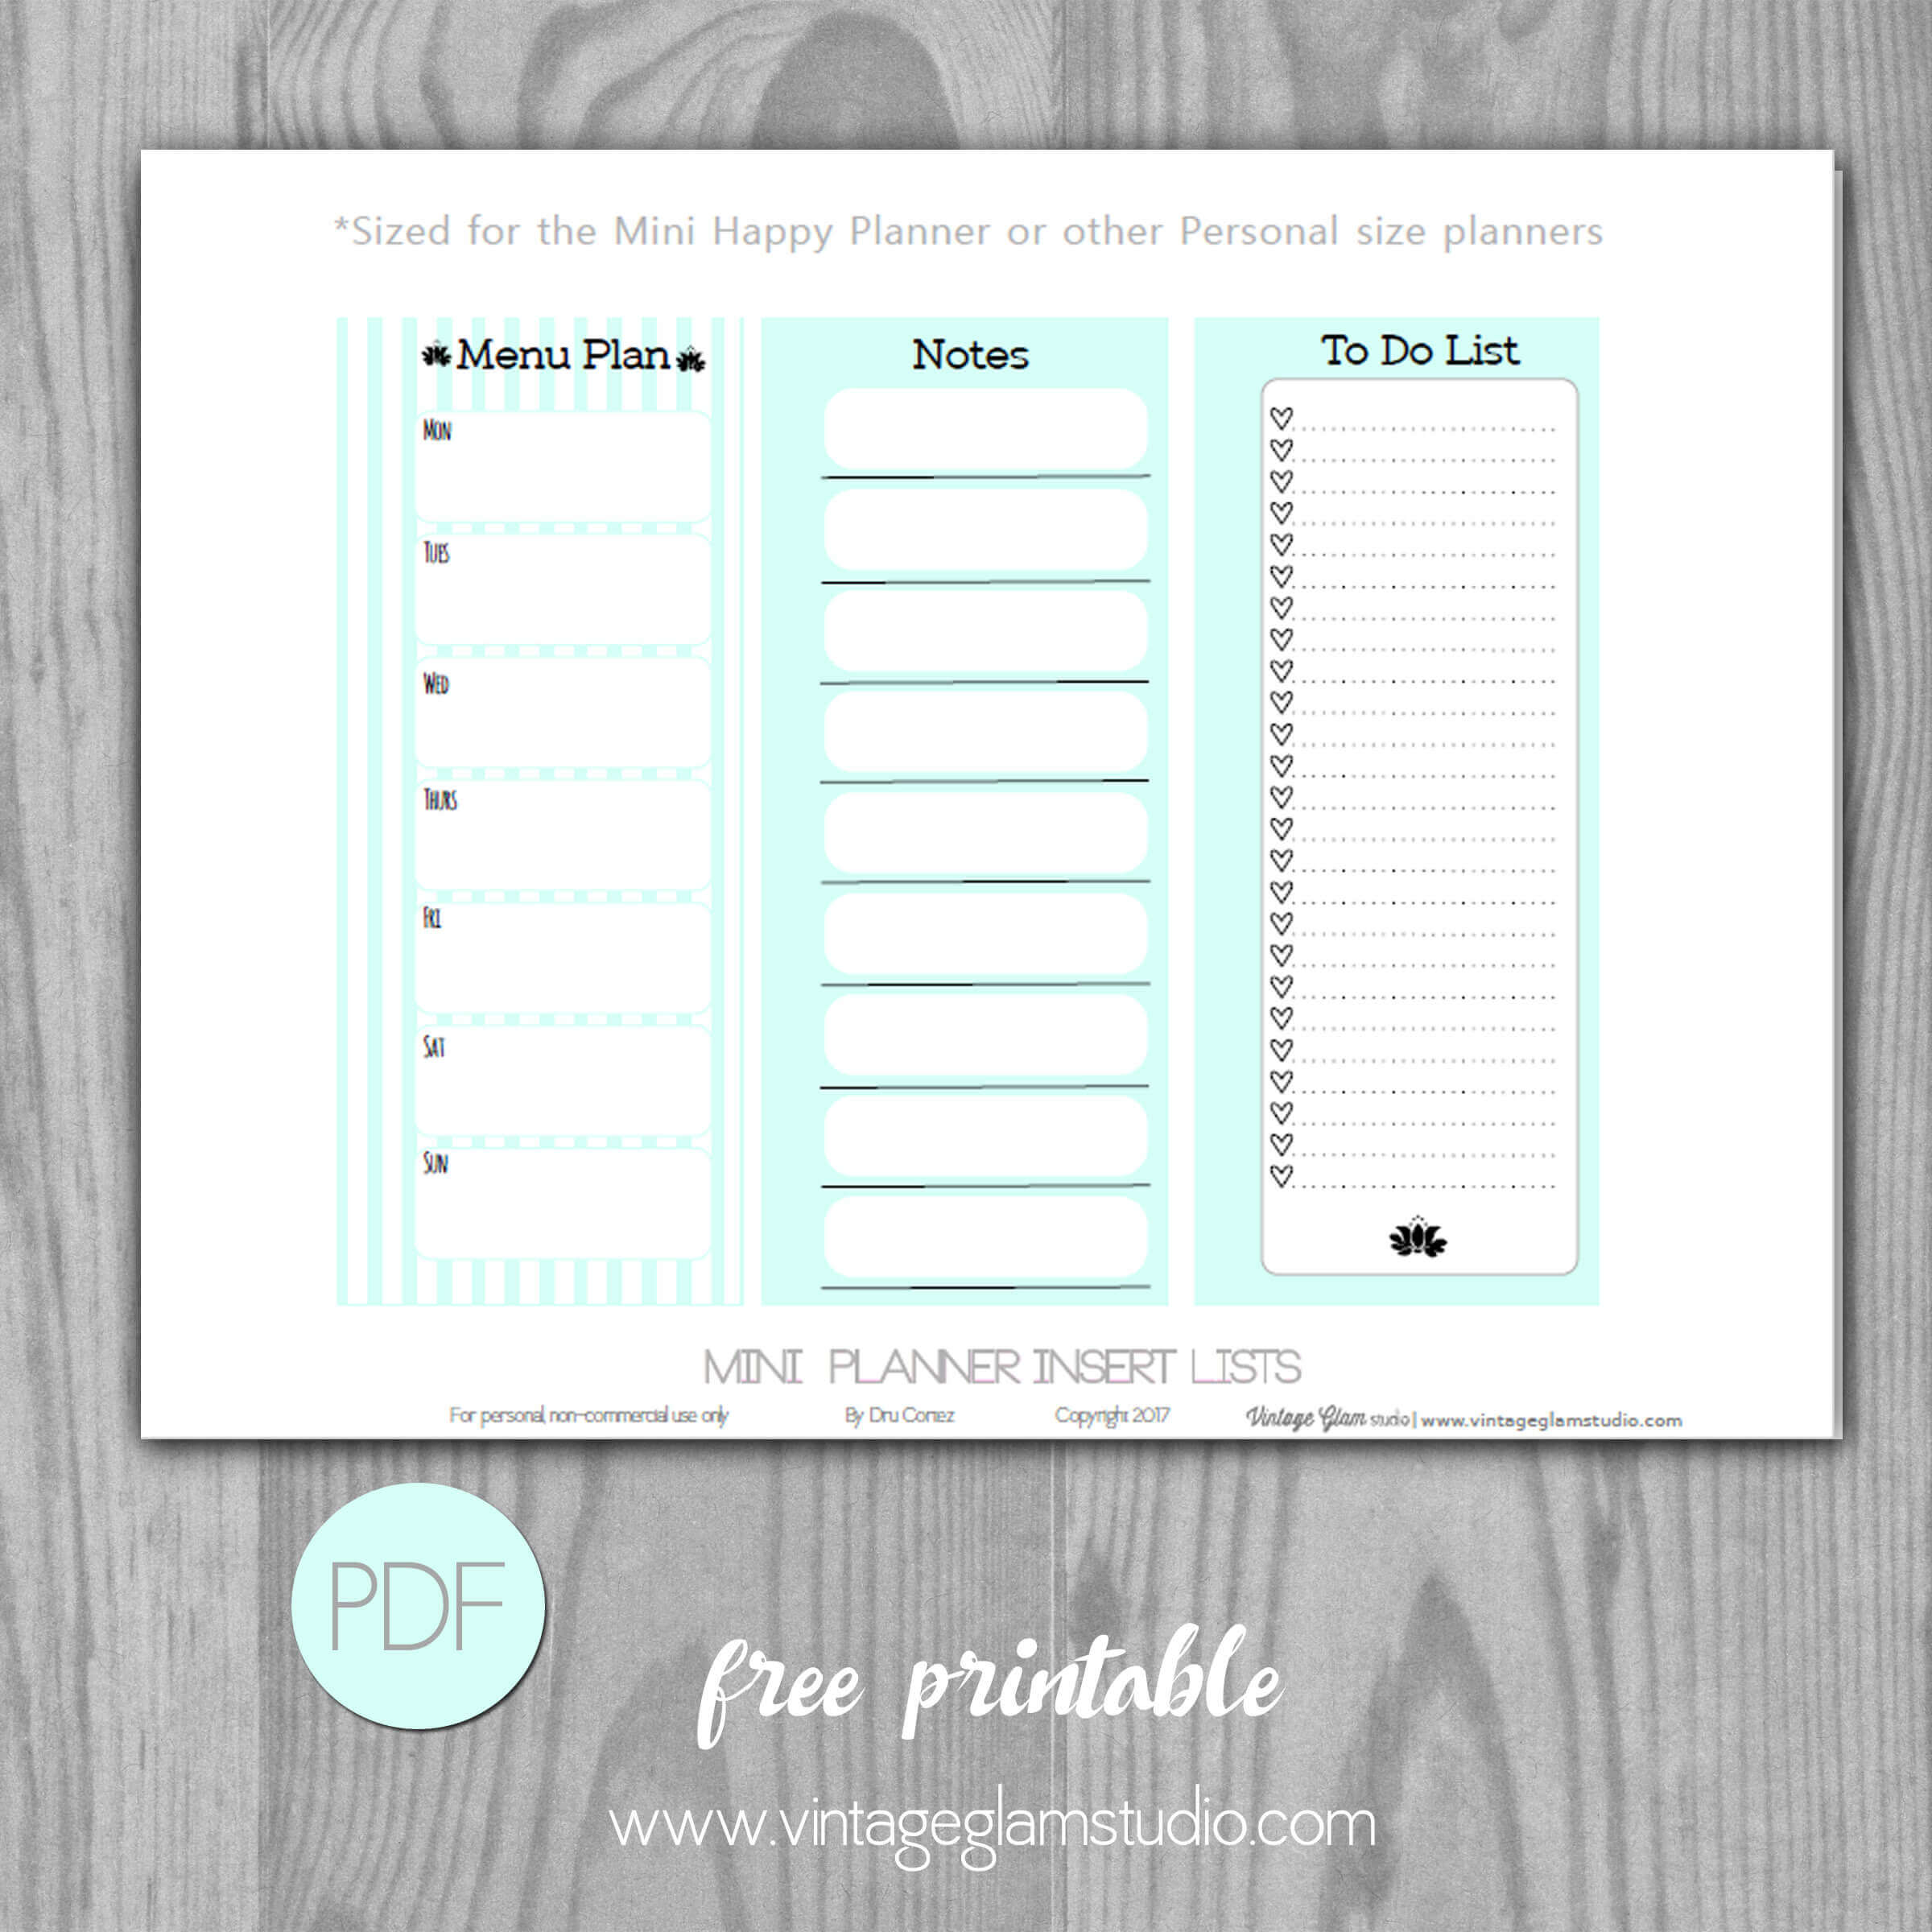 Mini Happy Planner - Checklist Inserts - Vintage Glam Studio